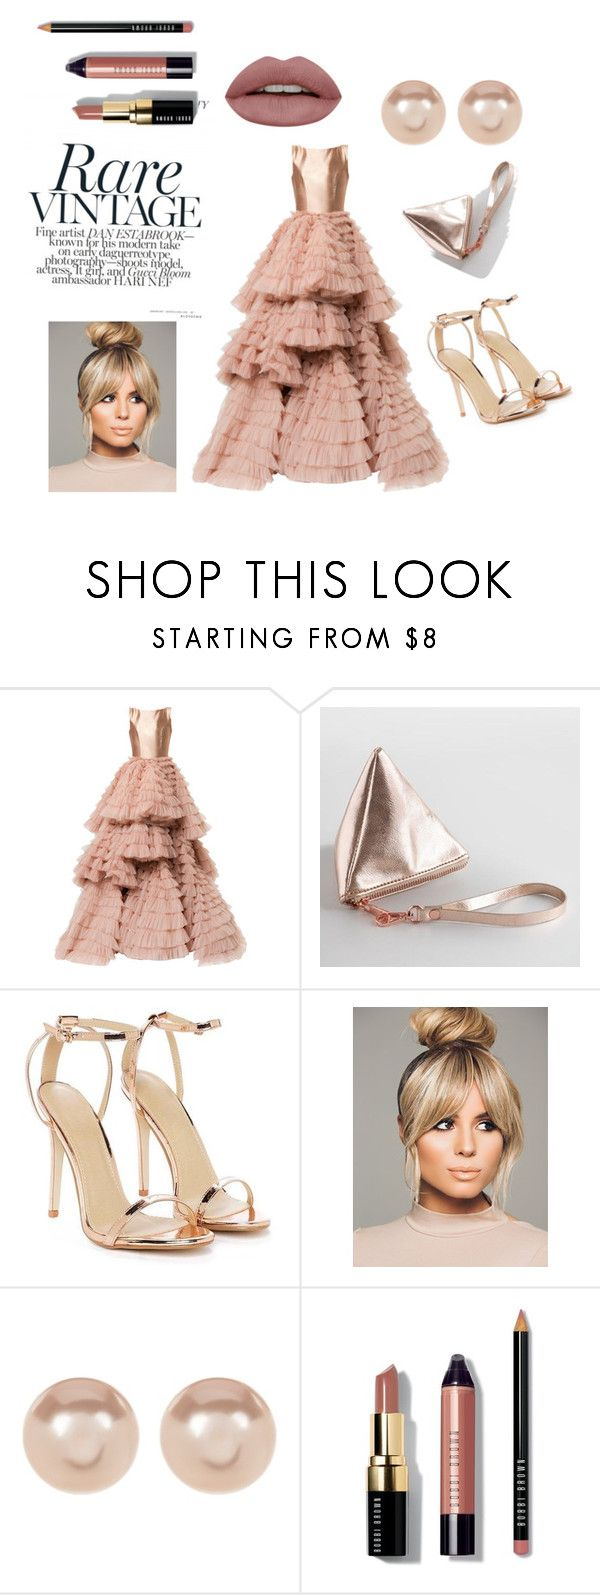 """Gown dresses"" by miloni-jhaveri ❤ liked on Polyvore featuring Isabel Sanchis, Cost Plus World Market, Nasty Gal, Nordstrom Rack and Bobbi Brown Cosmetics"